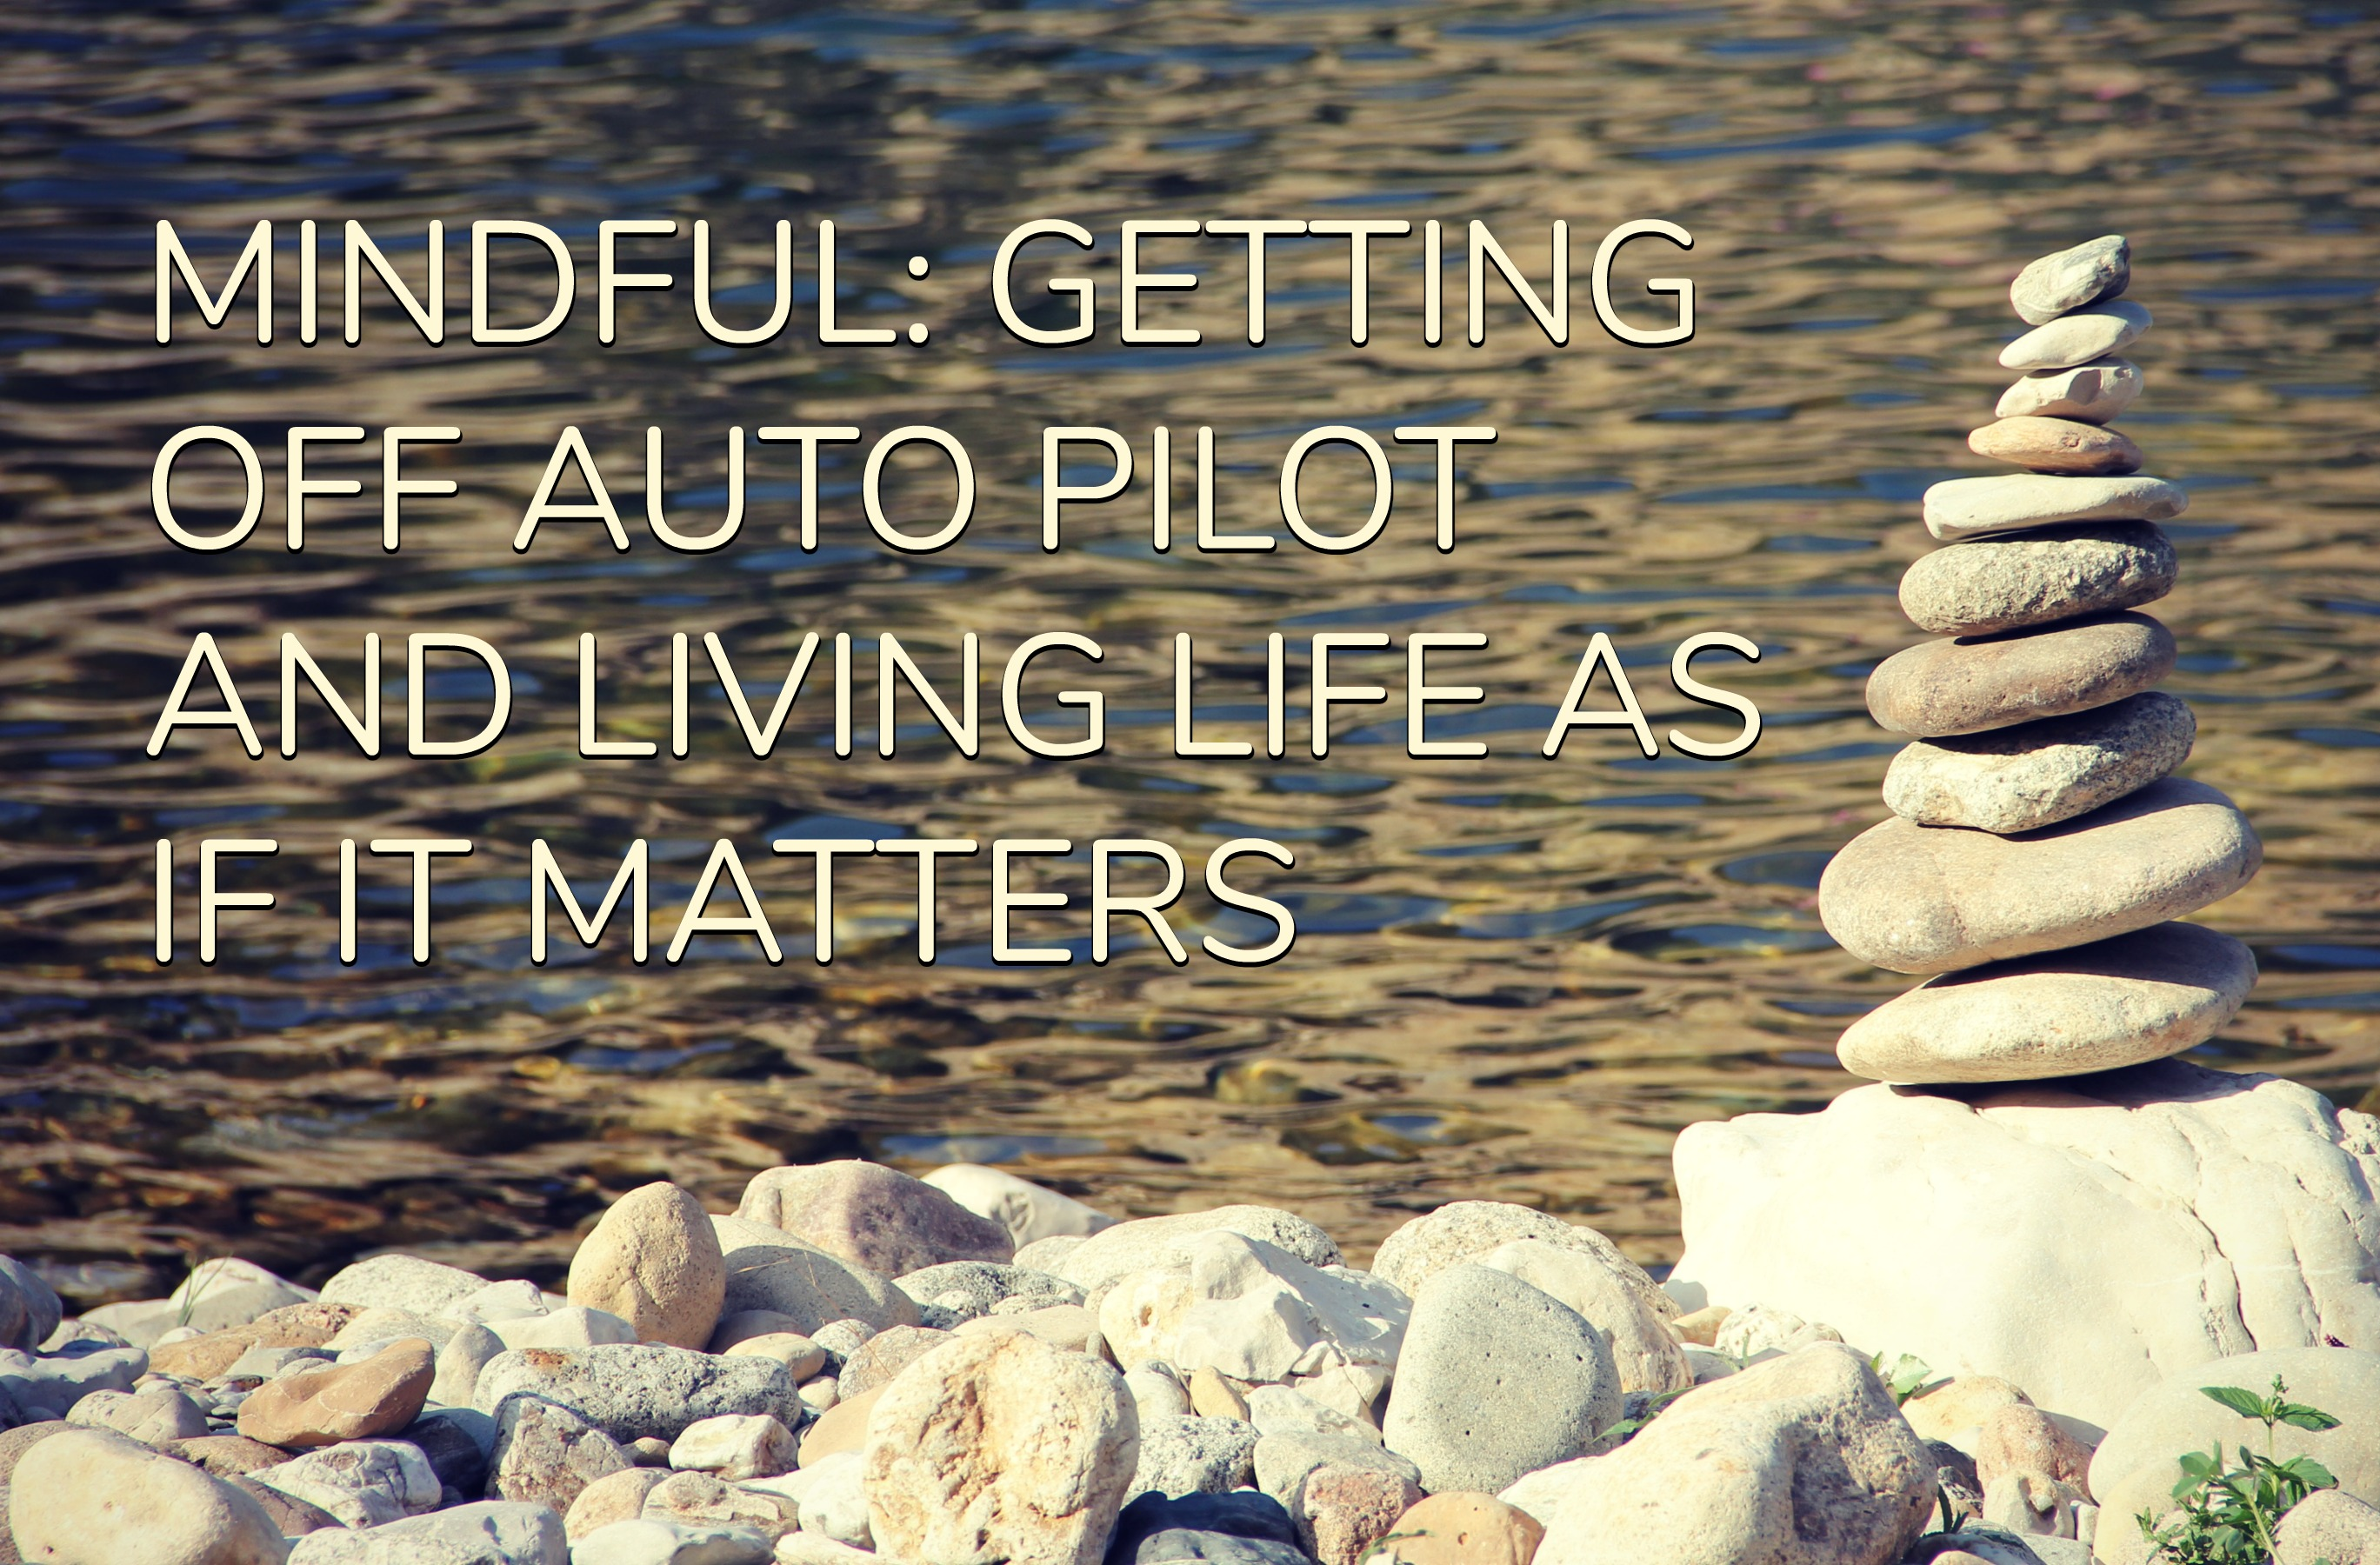 MINDFUL: GETTING OFF AUTO PILOT AND LIVING LIFE AS IF IT MATTERS